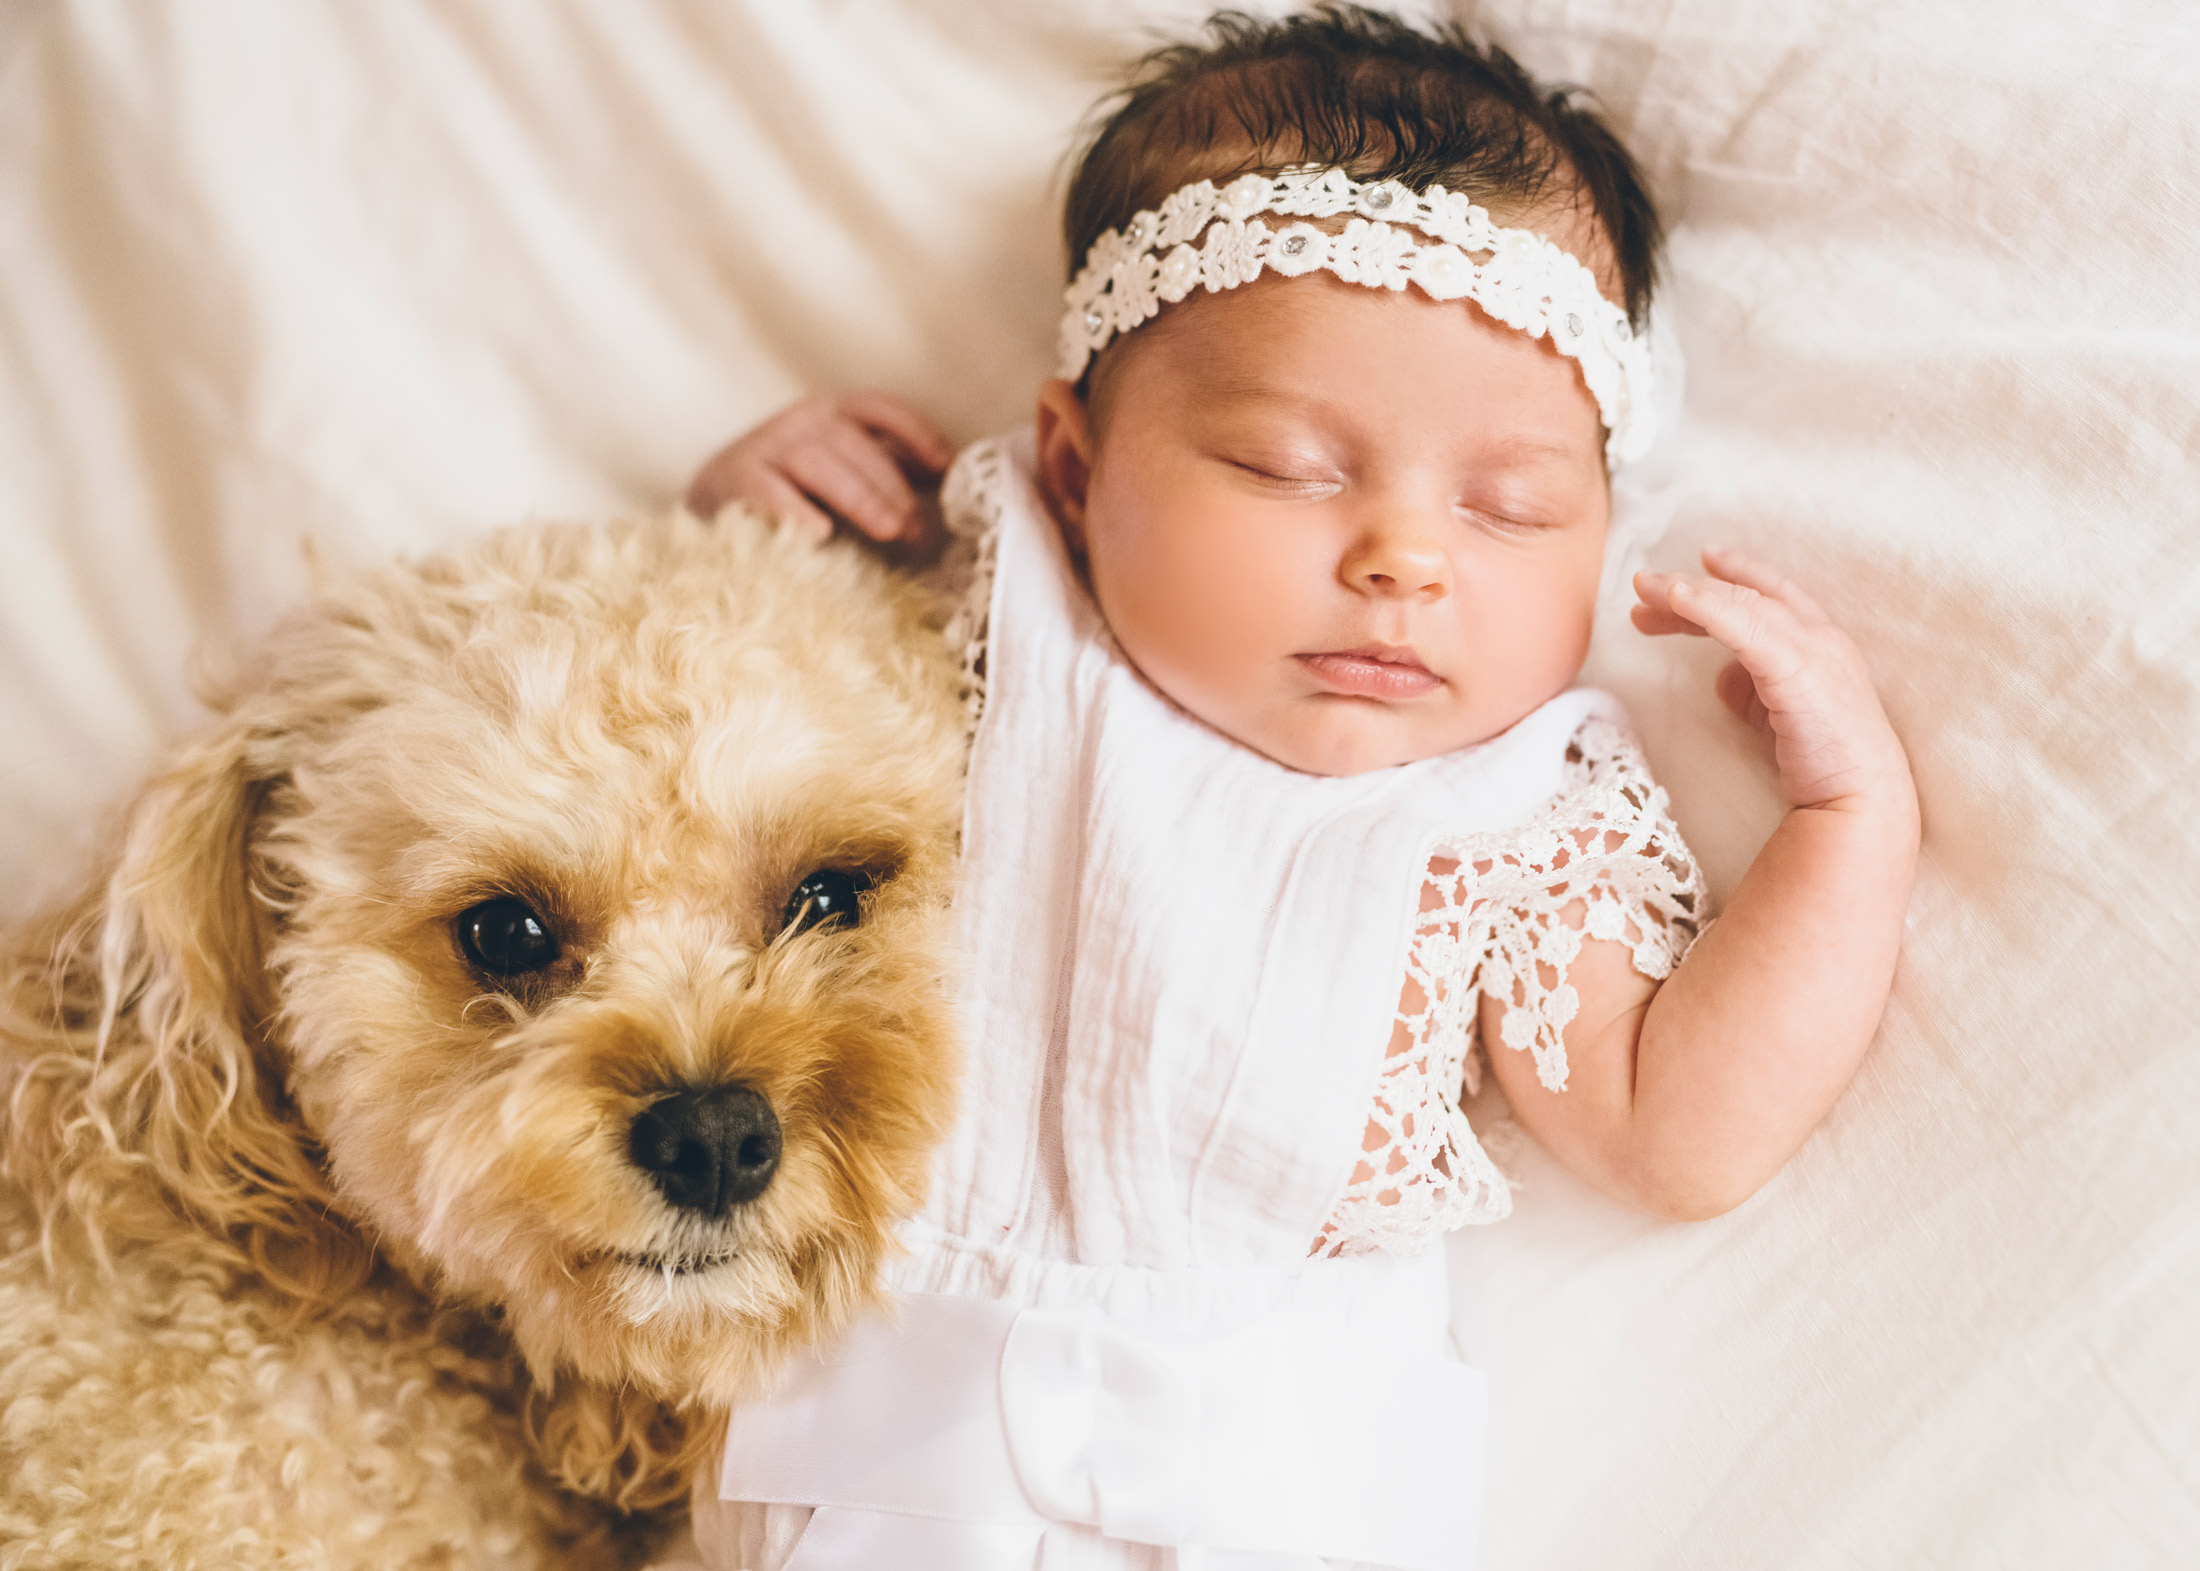 cavapoo-and-baby-2.jpg